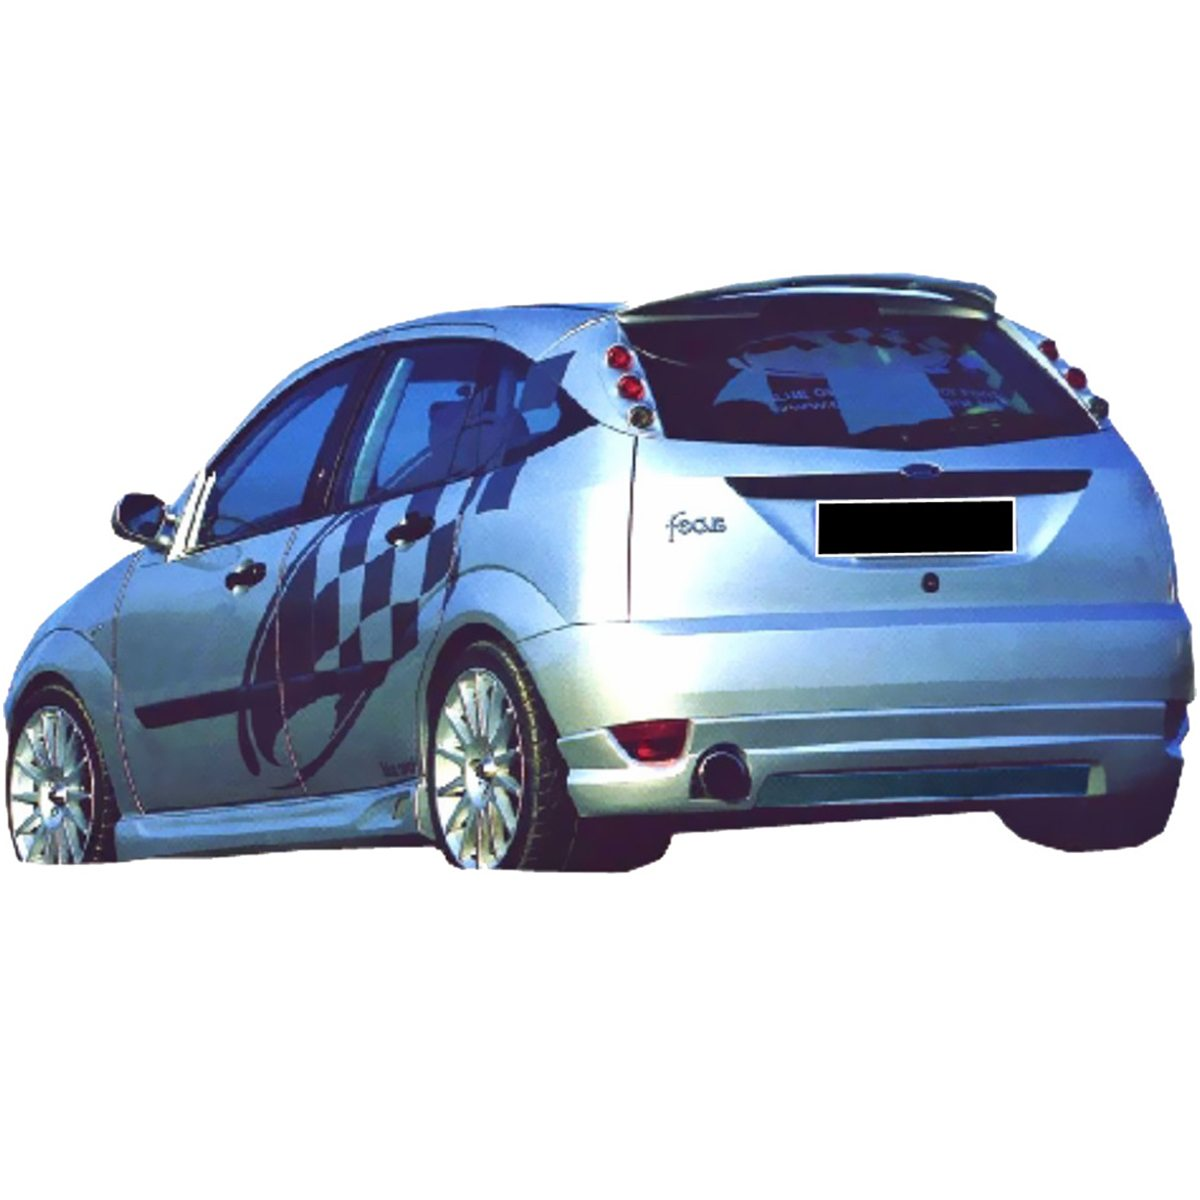 Ford-Focus-LSD-tras-SPA020-1